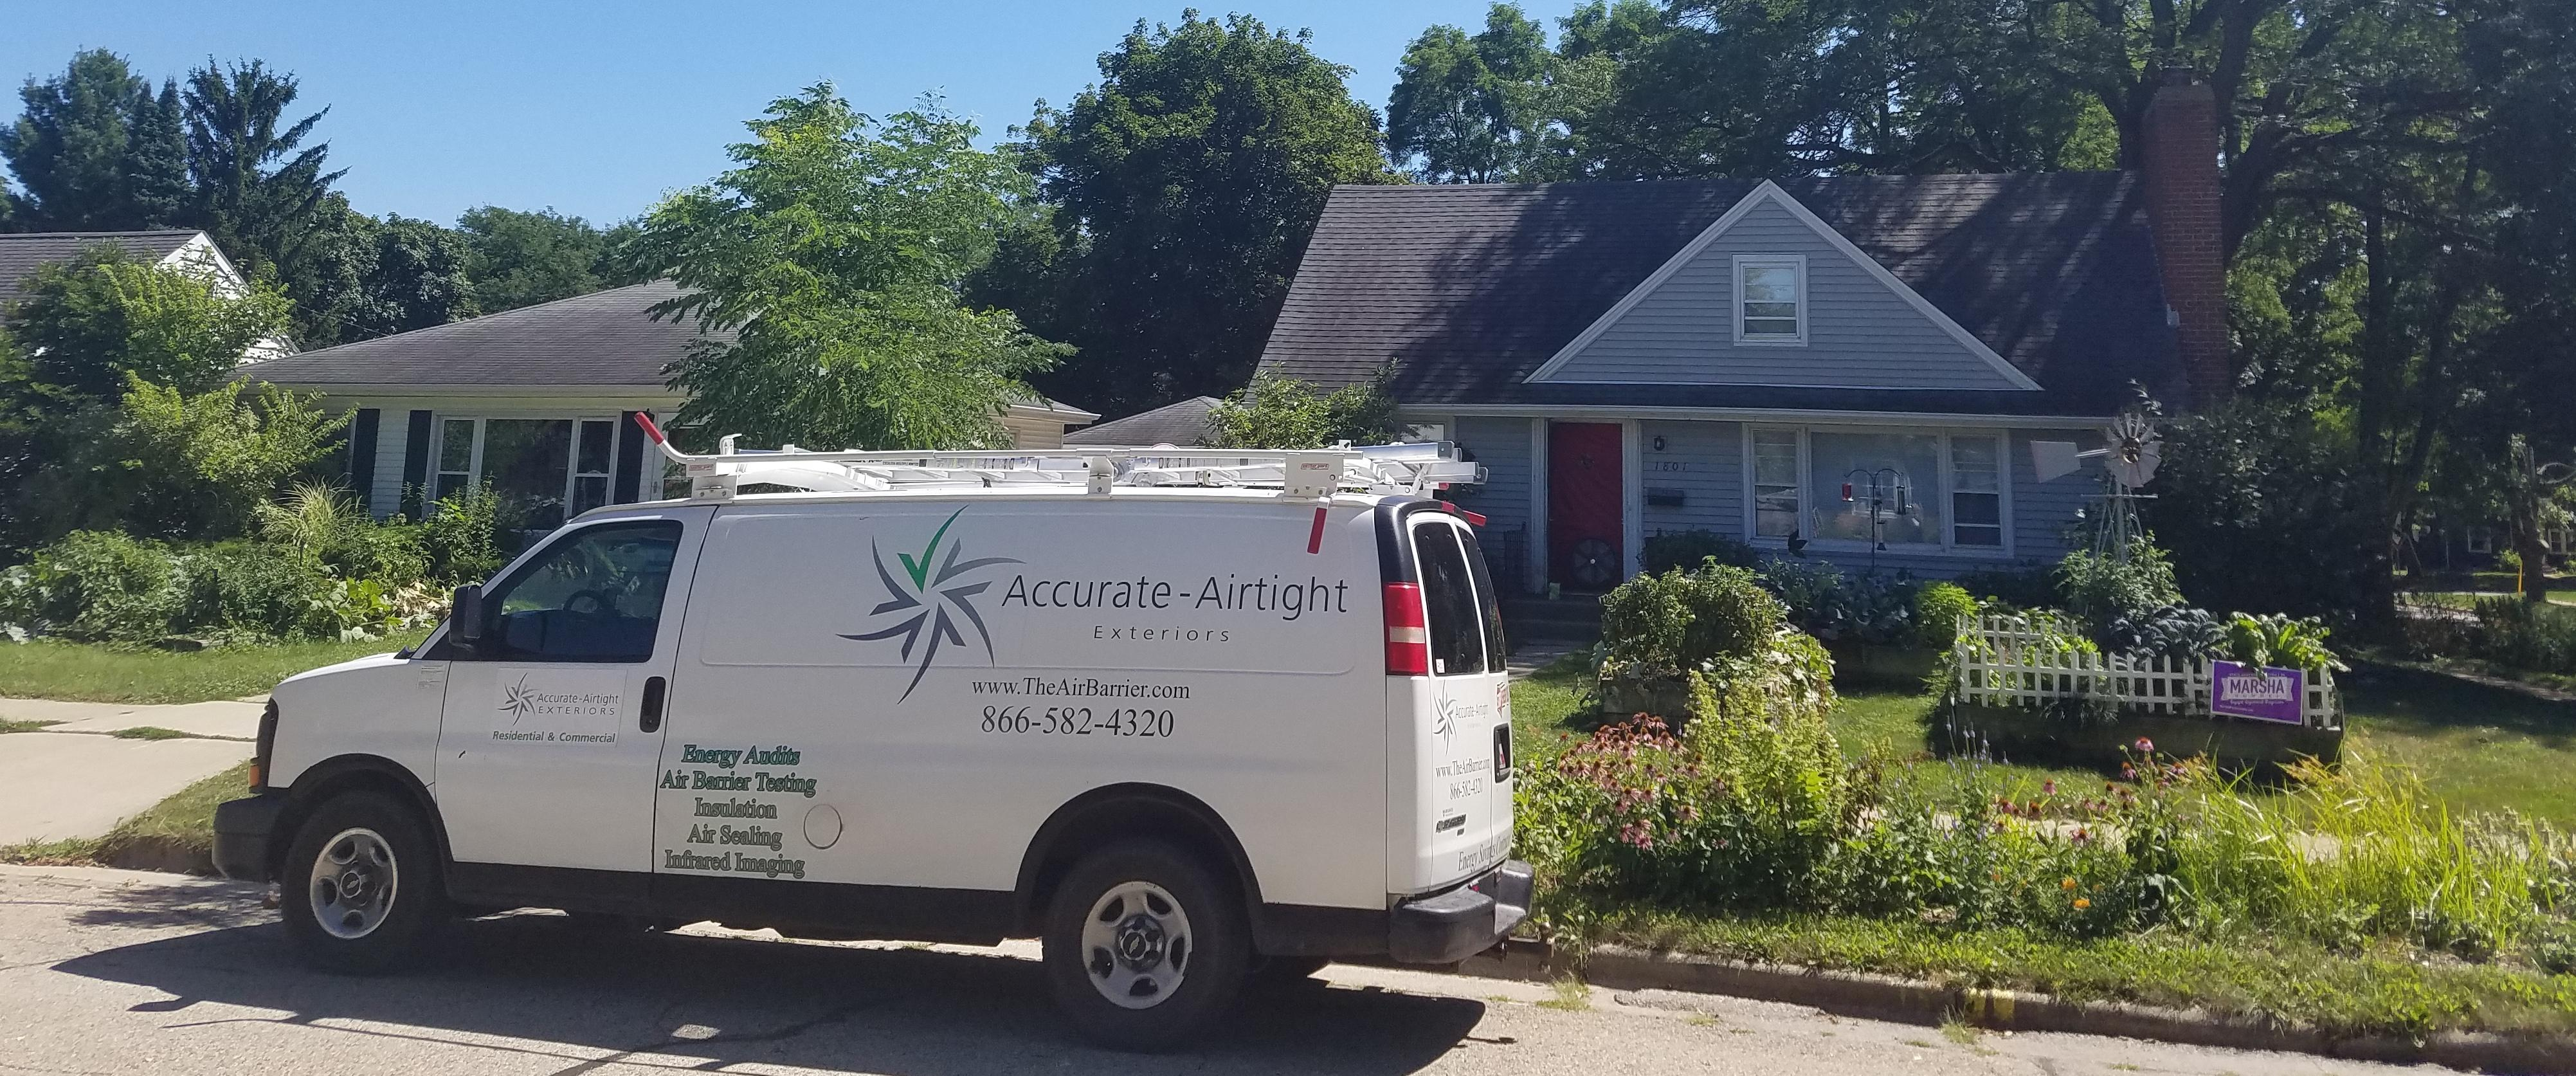 Accurate-Airtight Exteriors Vehicle Parked In Front Of Beautiful Suburban Homes